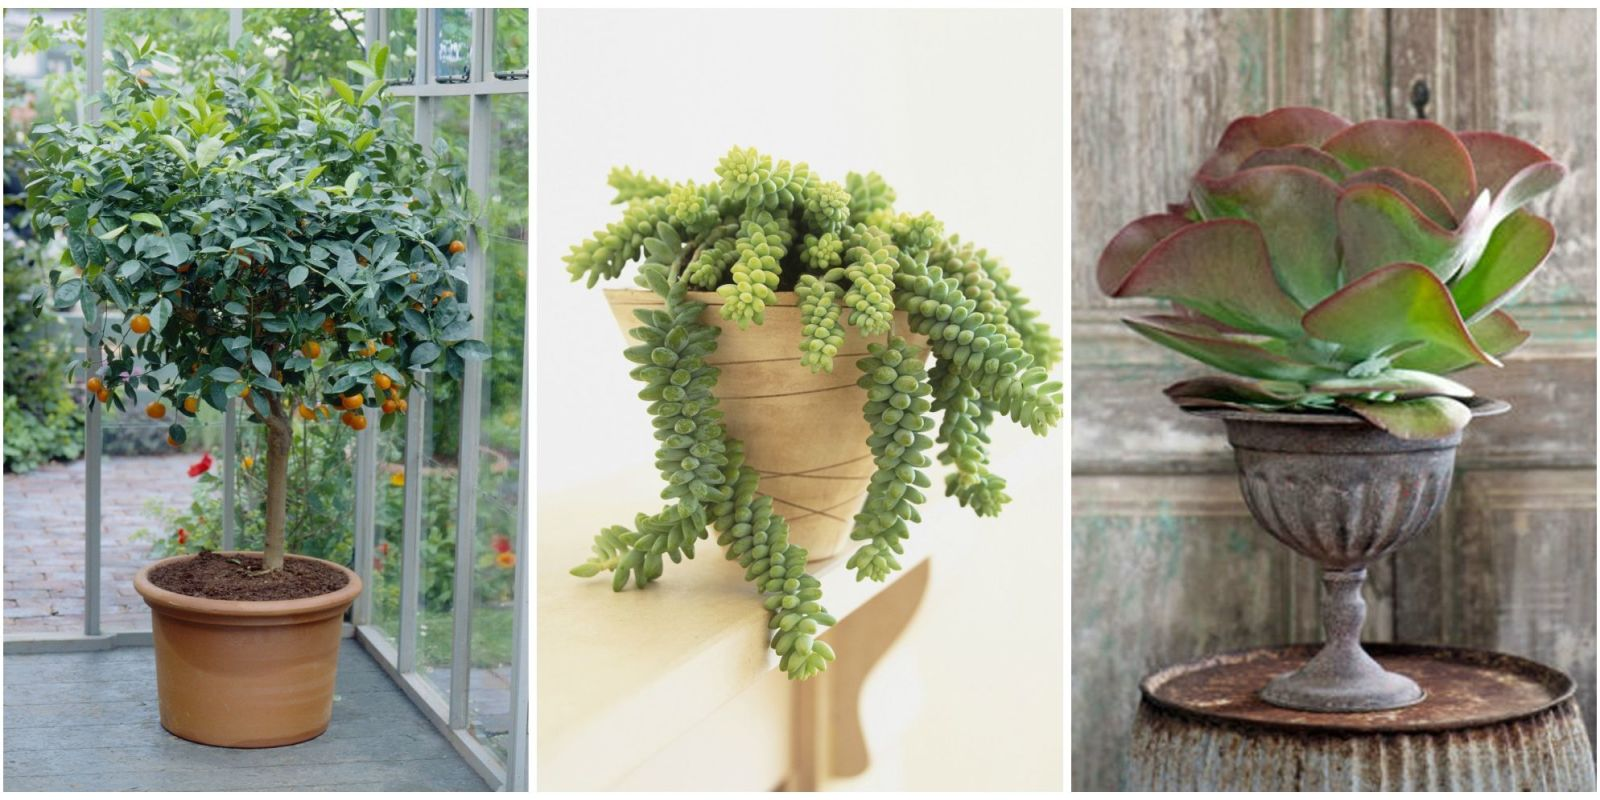 15 best indoor plants cool indoor gardening ideas for Indoor greenery ideas